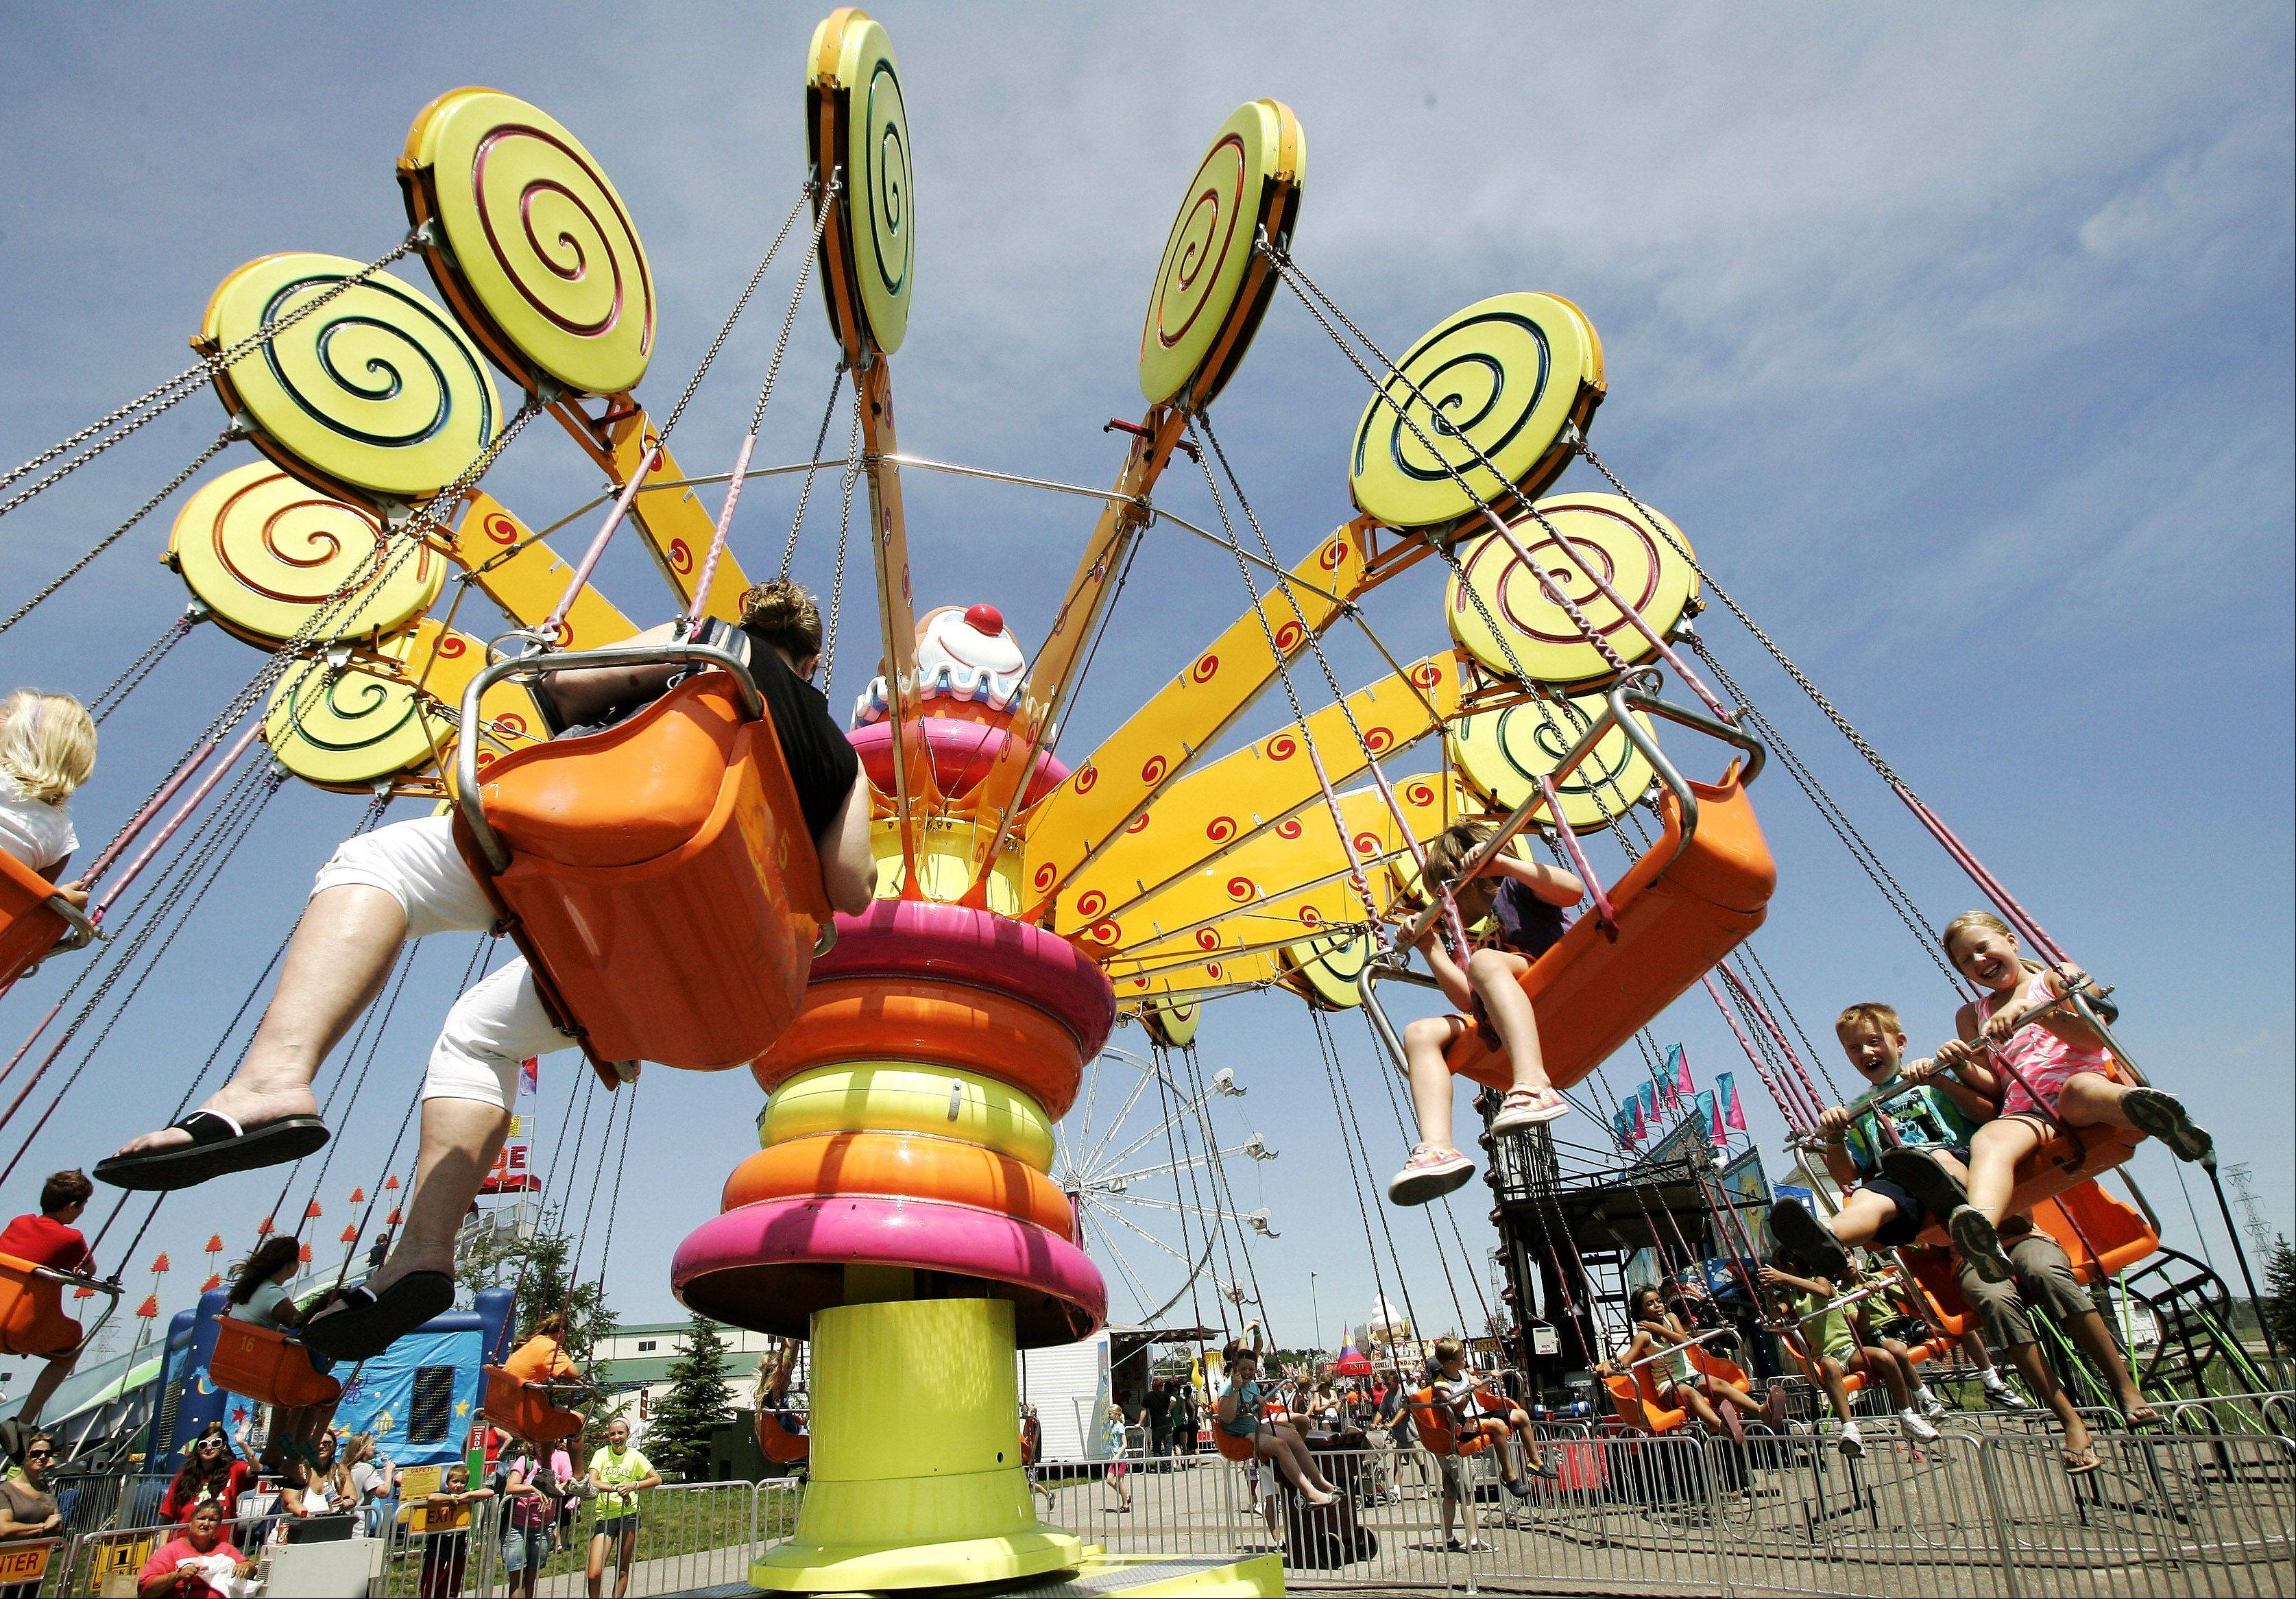 Gilbert R. Boucher II/gboucher@dailyherald.com, 2011Rides are a big attraction at the Lake County Fair in Grayslake.